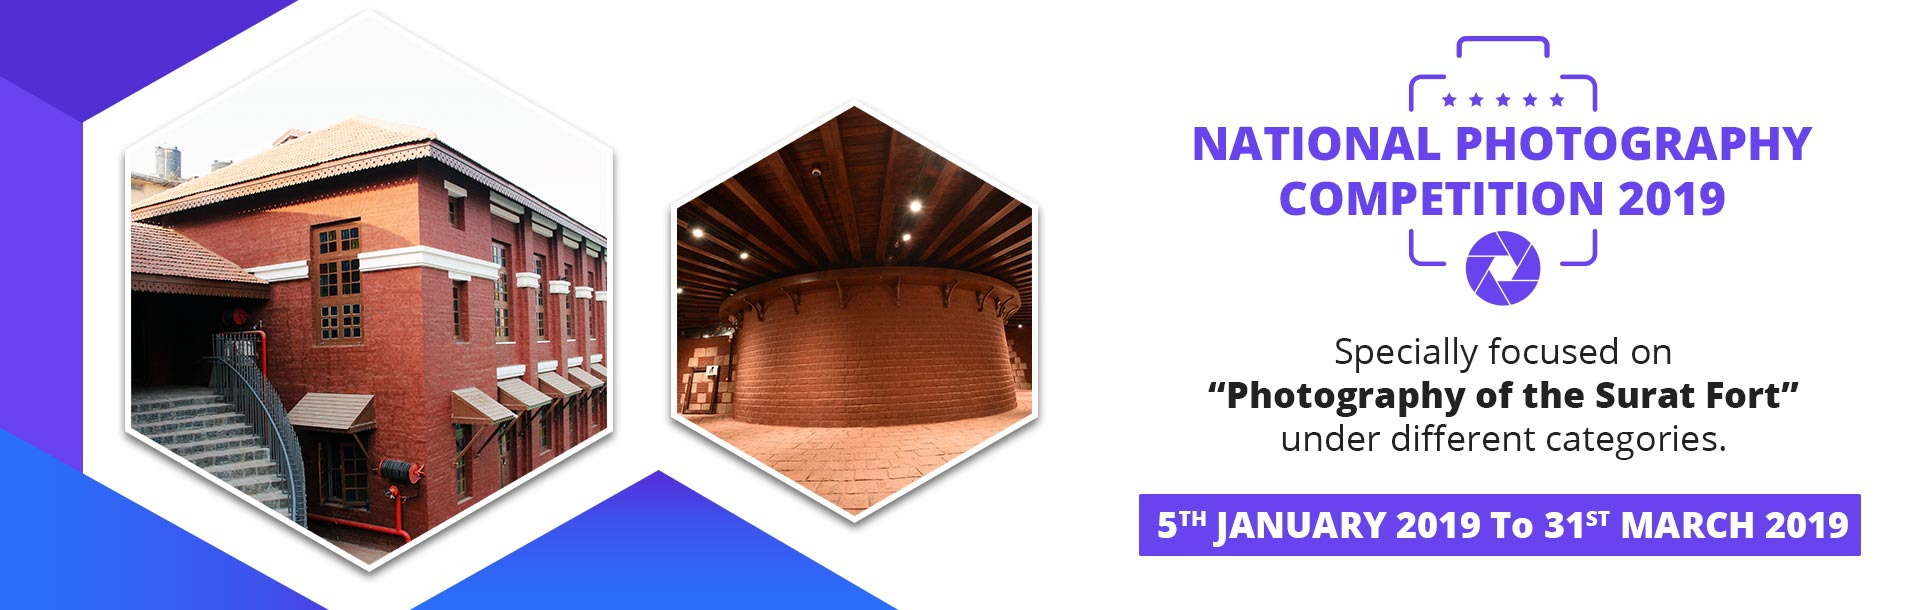 National Photography Competition 2019  on Photography of the Surat Fort